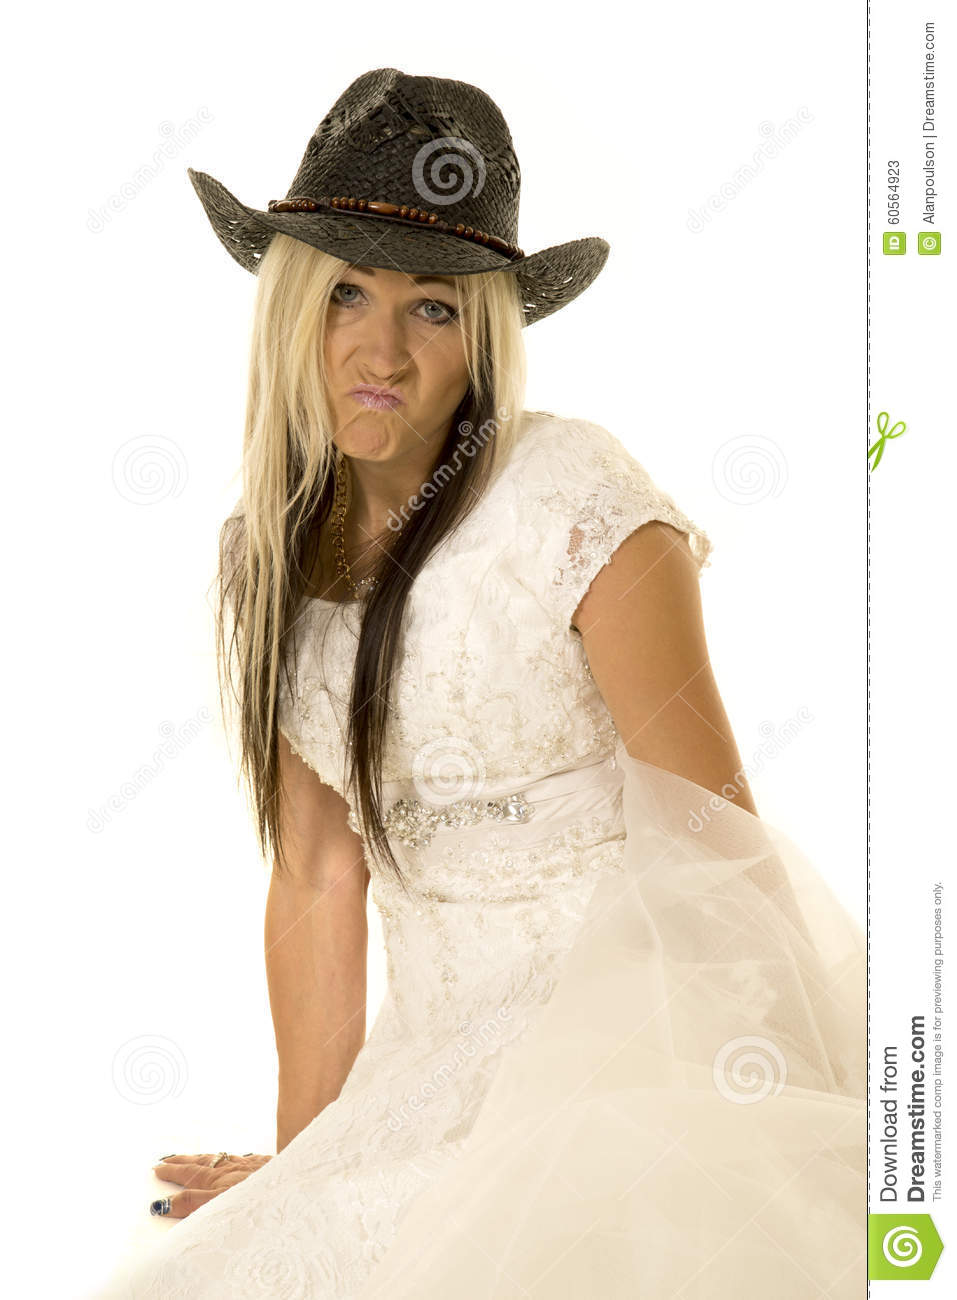 Bride In Cowboy Hat Sit Look Funny Expression Stock Image - Image of ... f3baa3f23c2